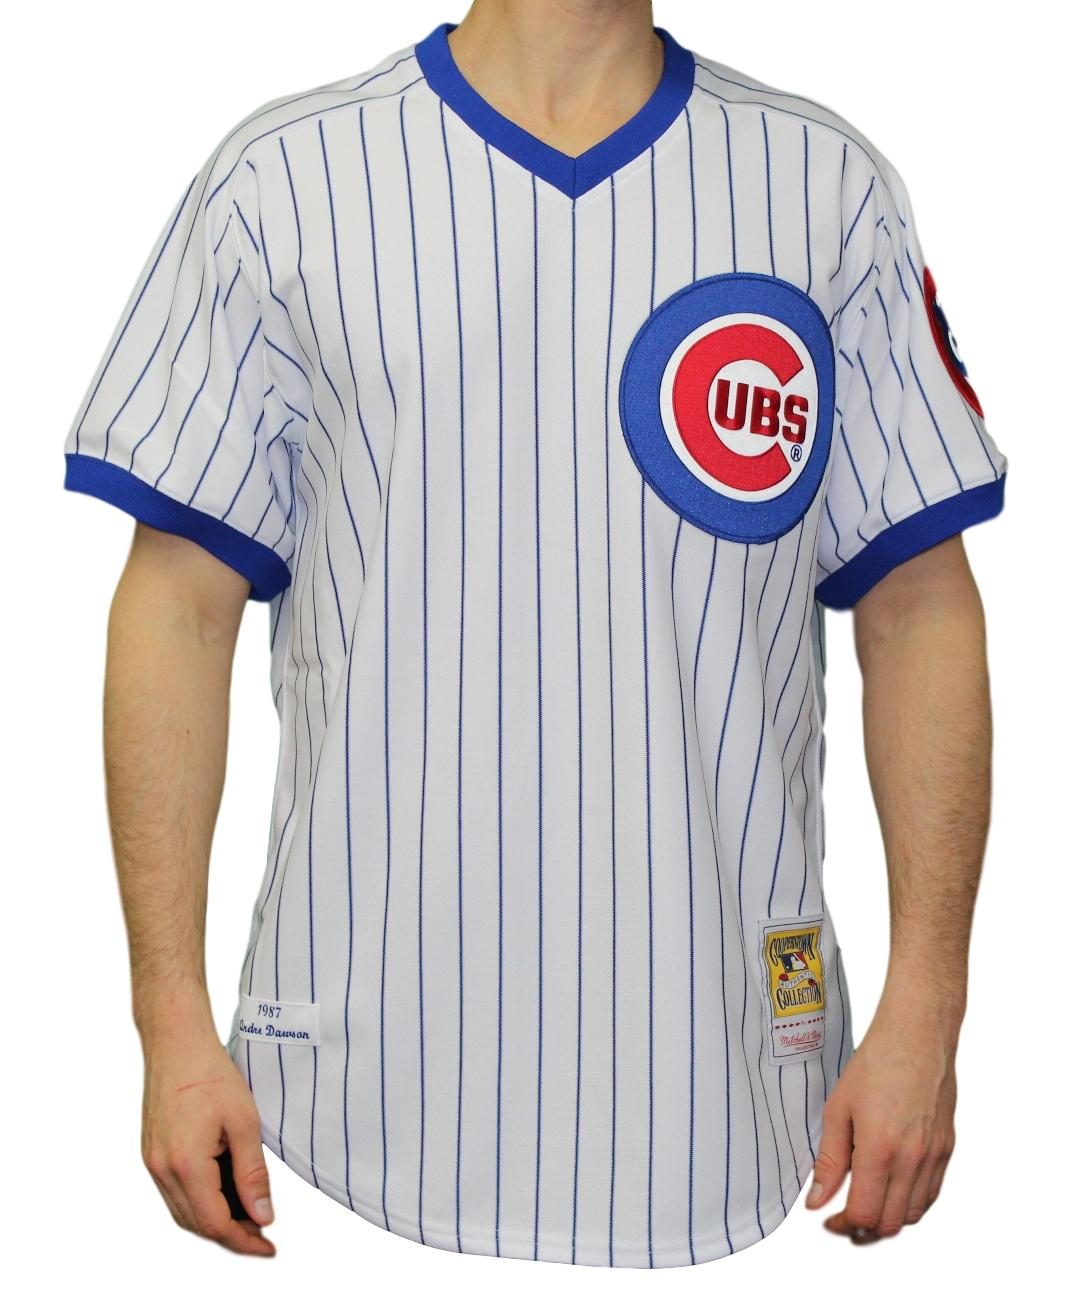 335cb577f Andre Dawson Chicago Cubs Mitchell   Ness MLB Authentic 1987 Pinstripe  Jersey